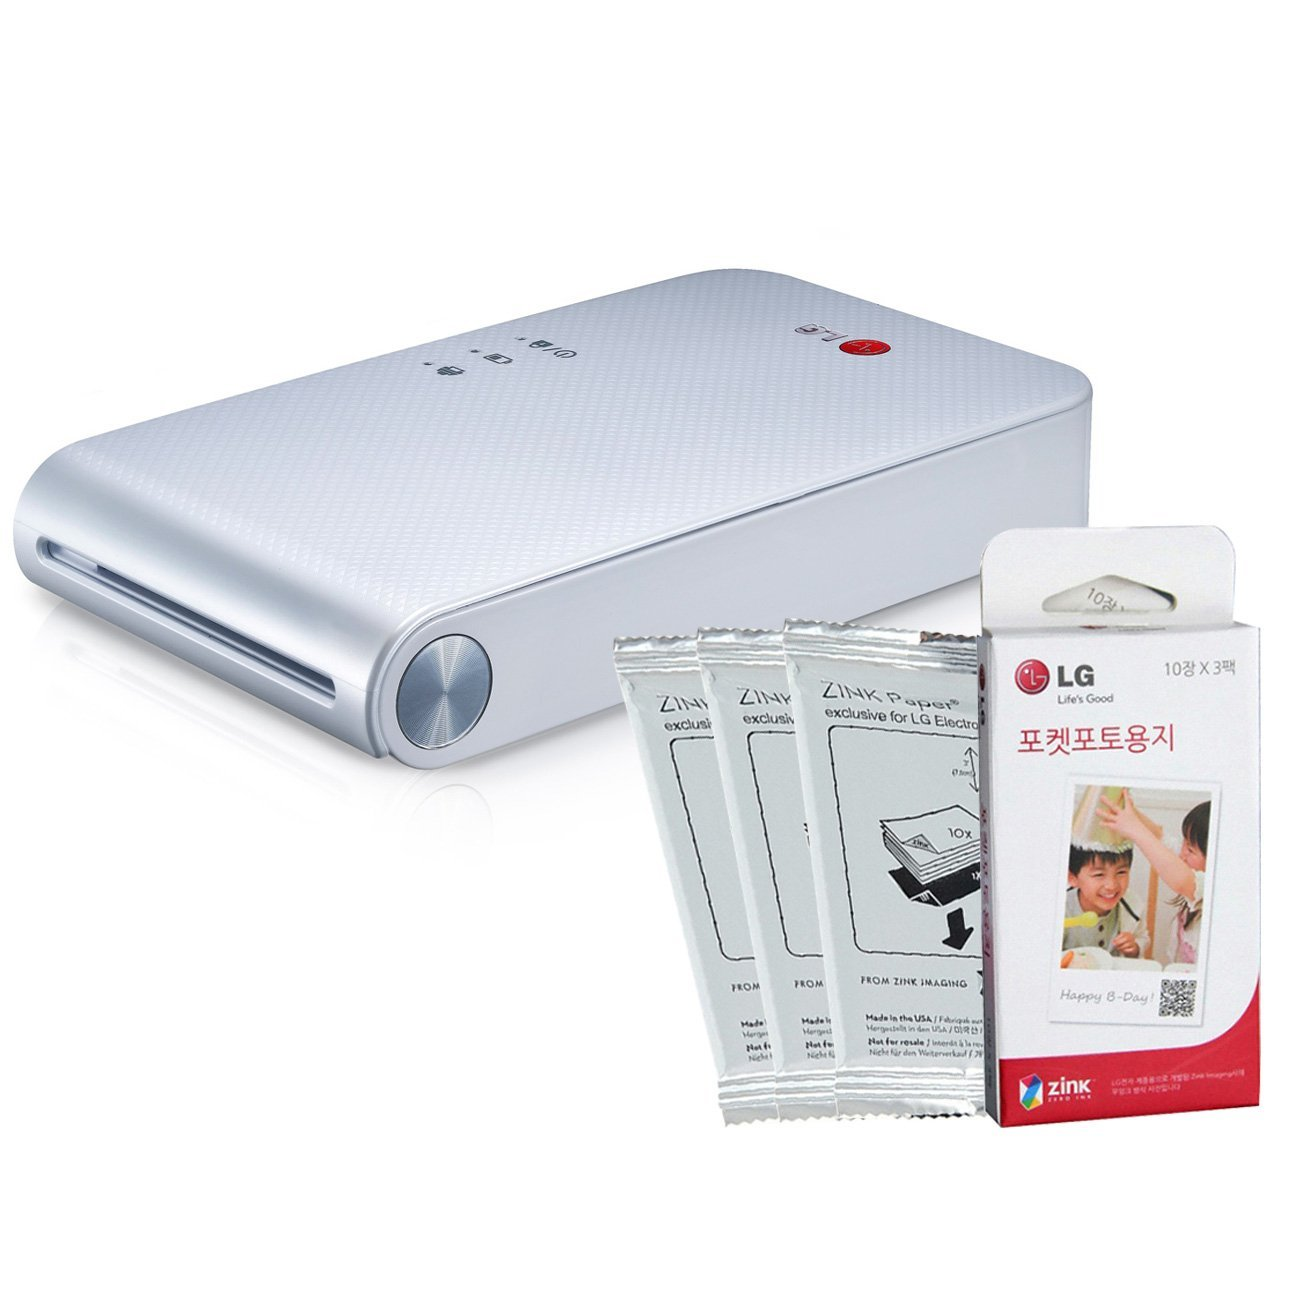 Interesting Gadget: A Portable Smartphone Printer – LG PD239